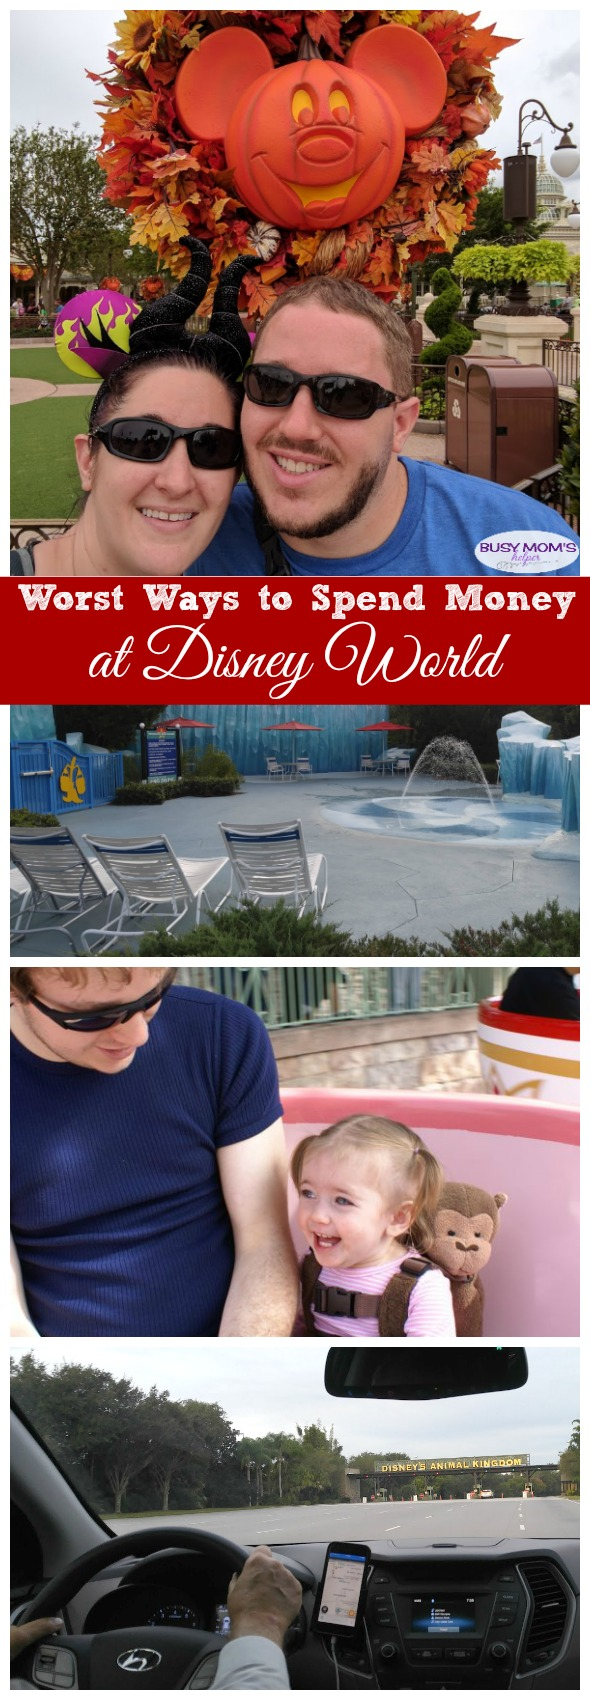 Worst Ways to Spend Money at Disney World #waltdisneyworld #wdw #travel #familytravel #disney #disneyparks